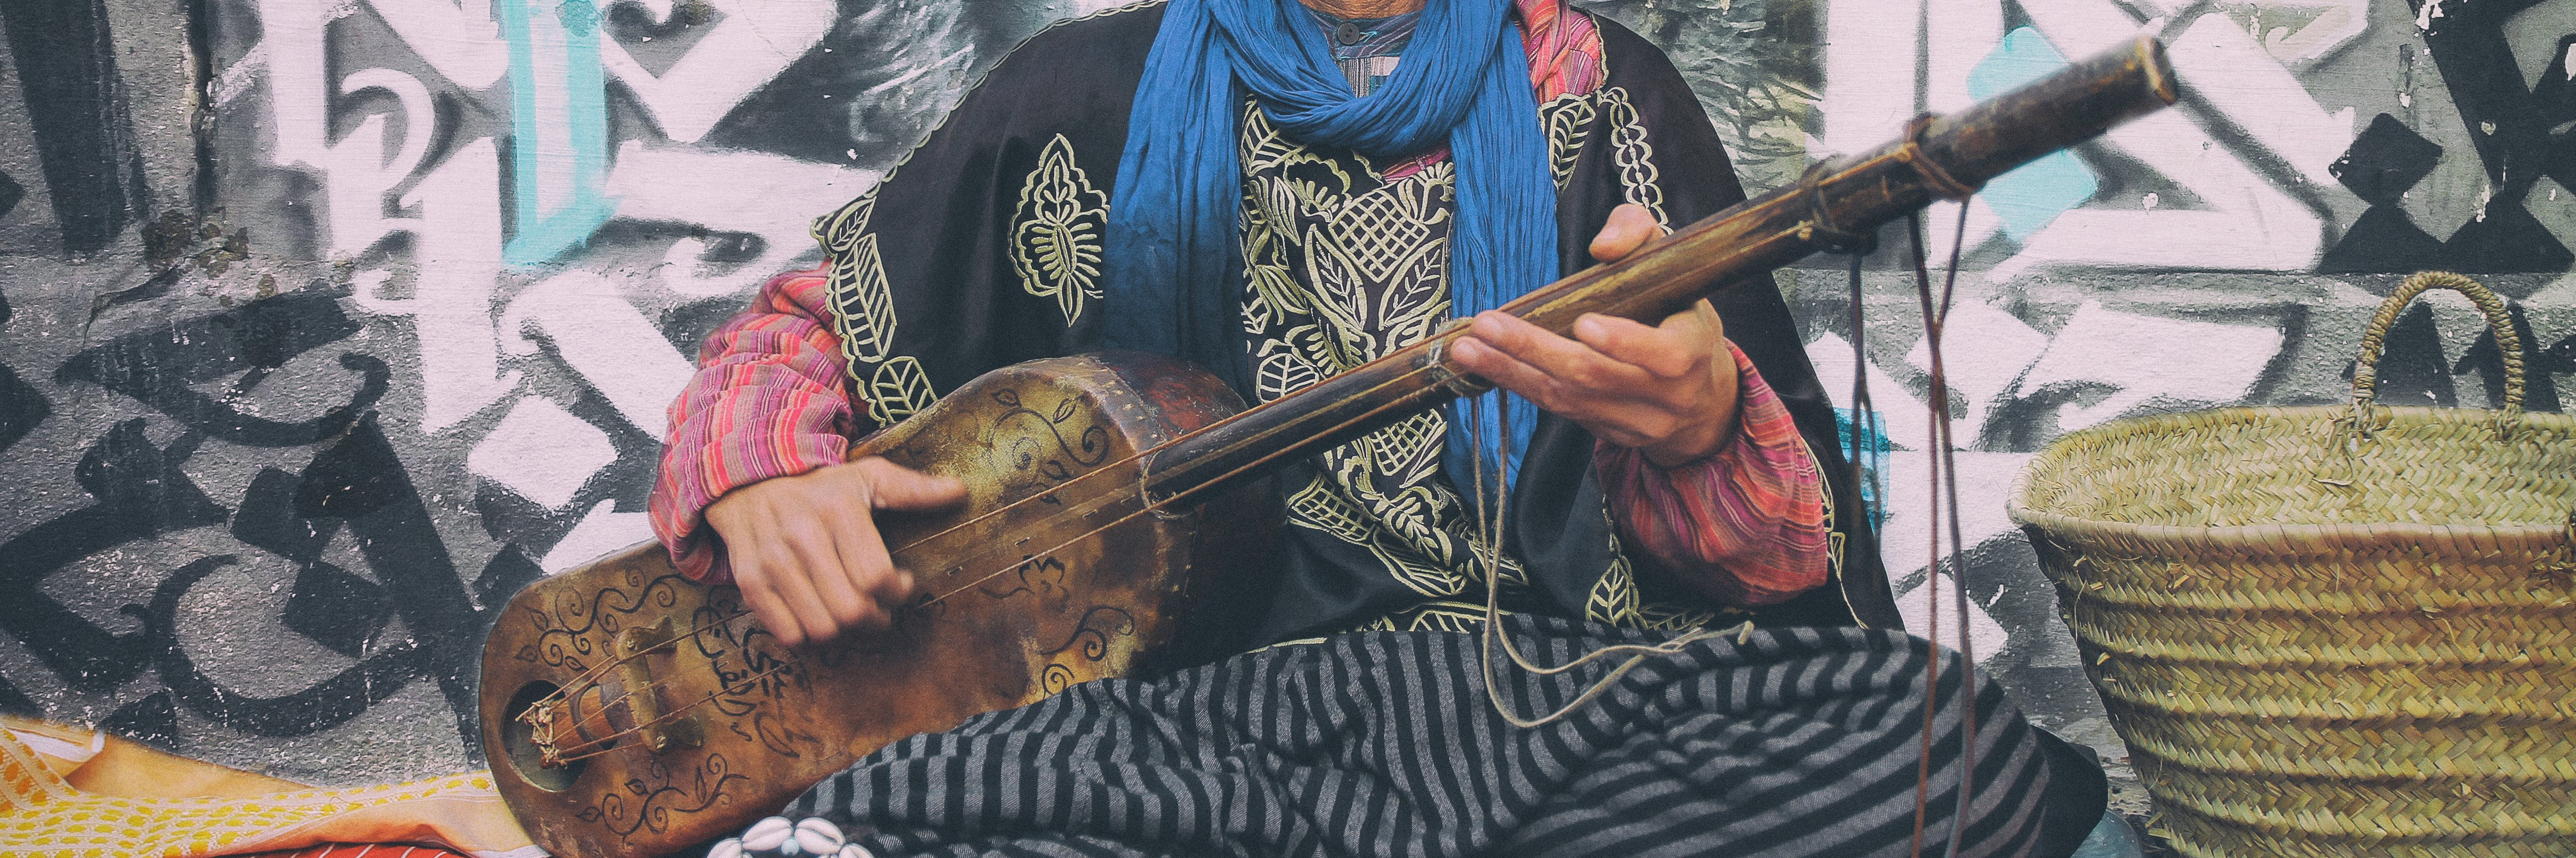 person playing a stringed musical instrument in Asilah, Morocco